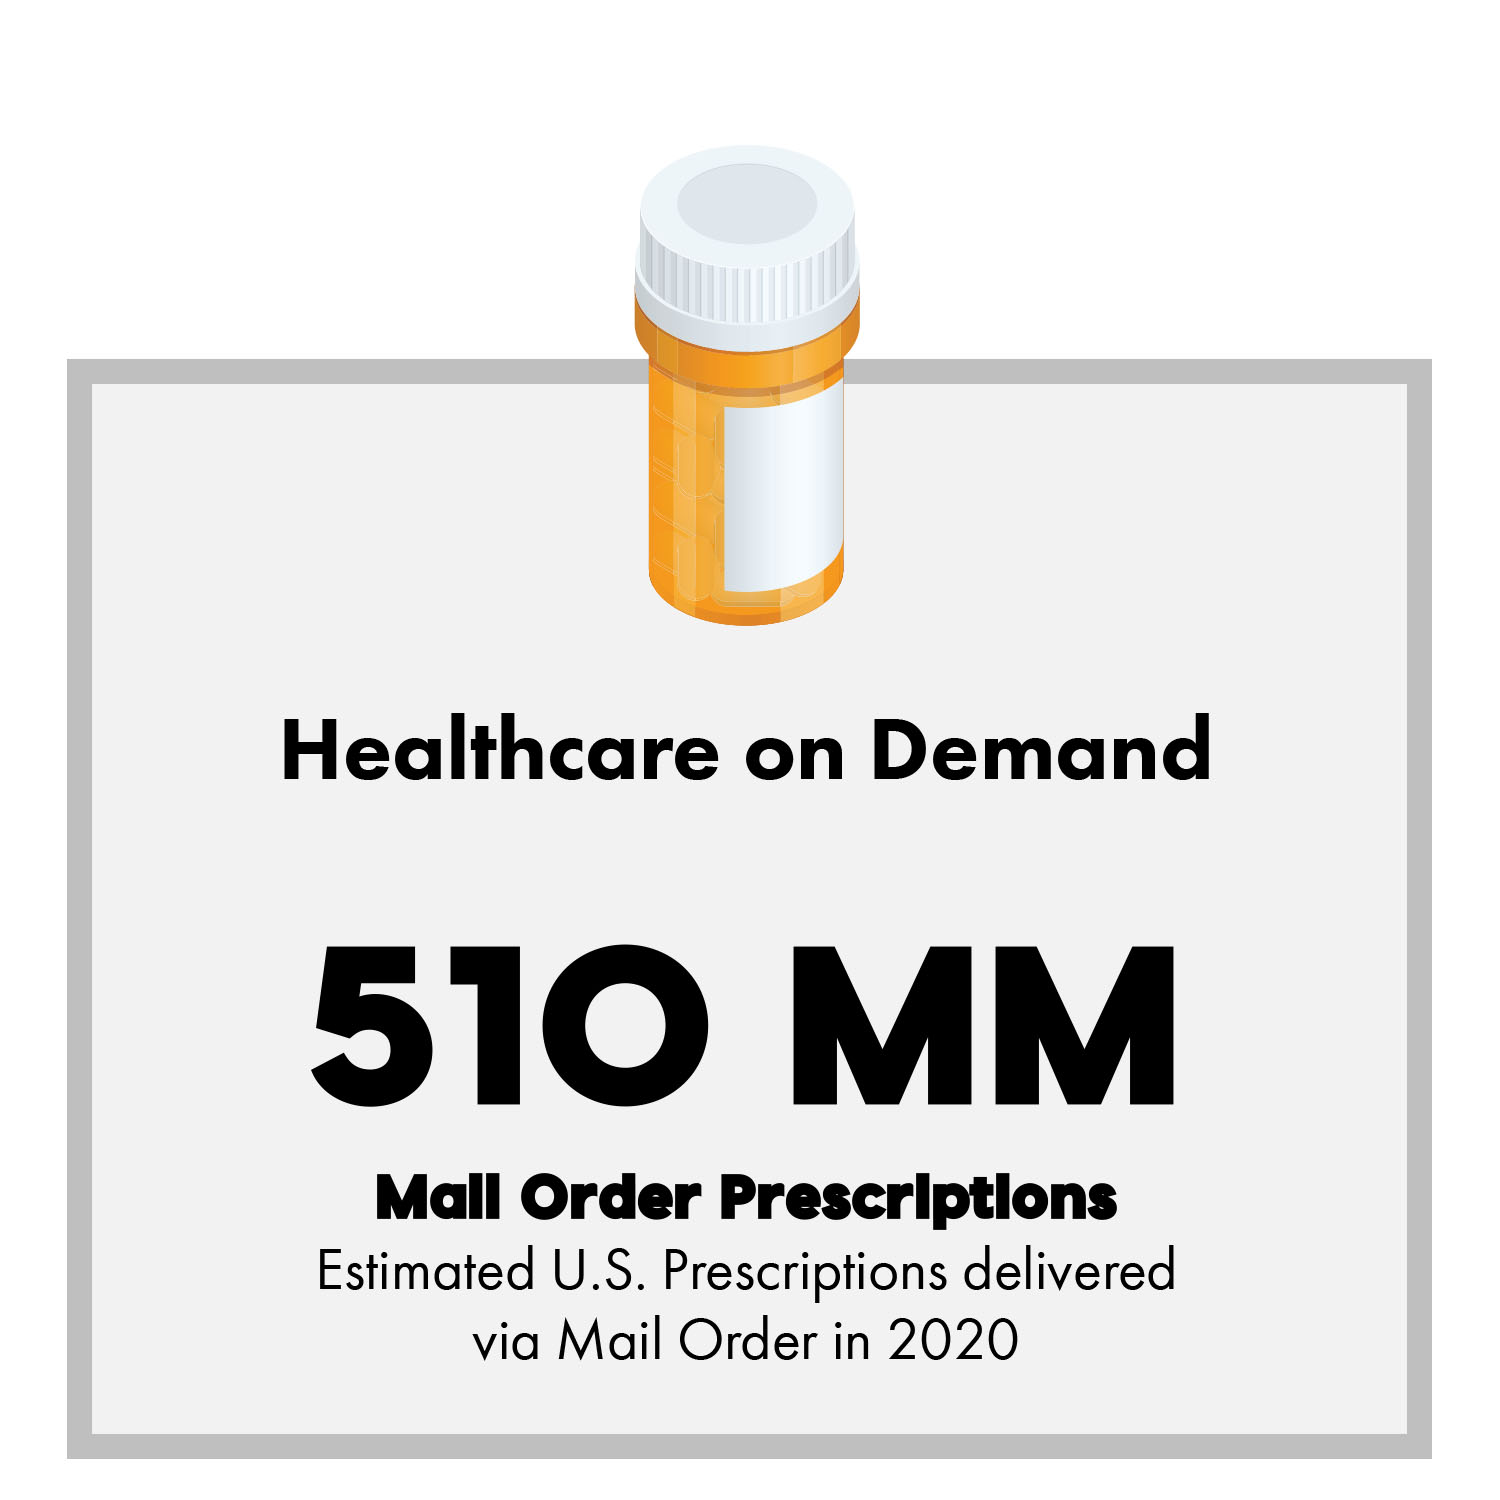 Solutions for residents to receive maintenance prescriptions, specialty drugs and medical supplies at home. Aid in HIPAA compliance and provide timely receipt of medications and receipt alerts for patients, caregivers and providers.